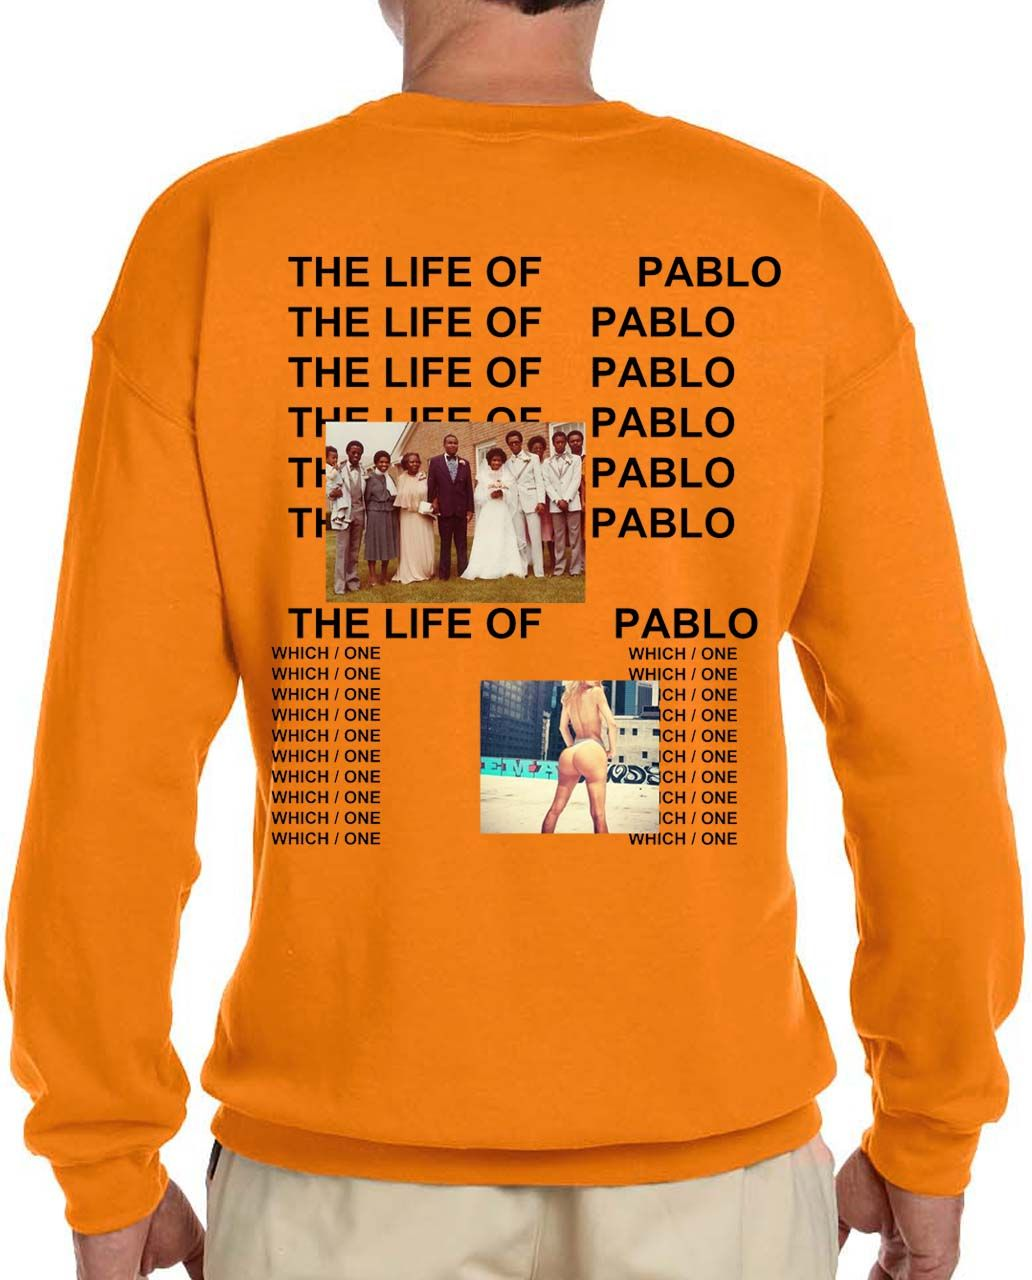 Just Landed New Kanye The Life Of Pablo Album Long Sleeve T Shirt Pablo Shirt Life Of Pablo Shirt Clothes Design